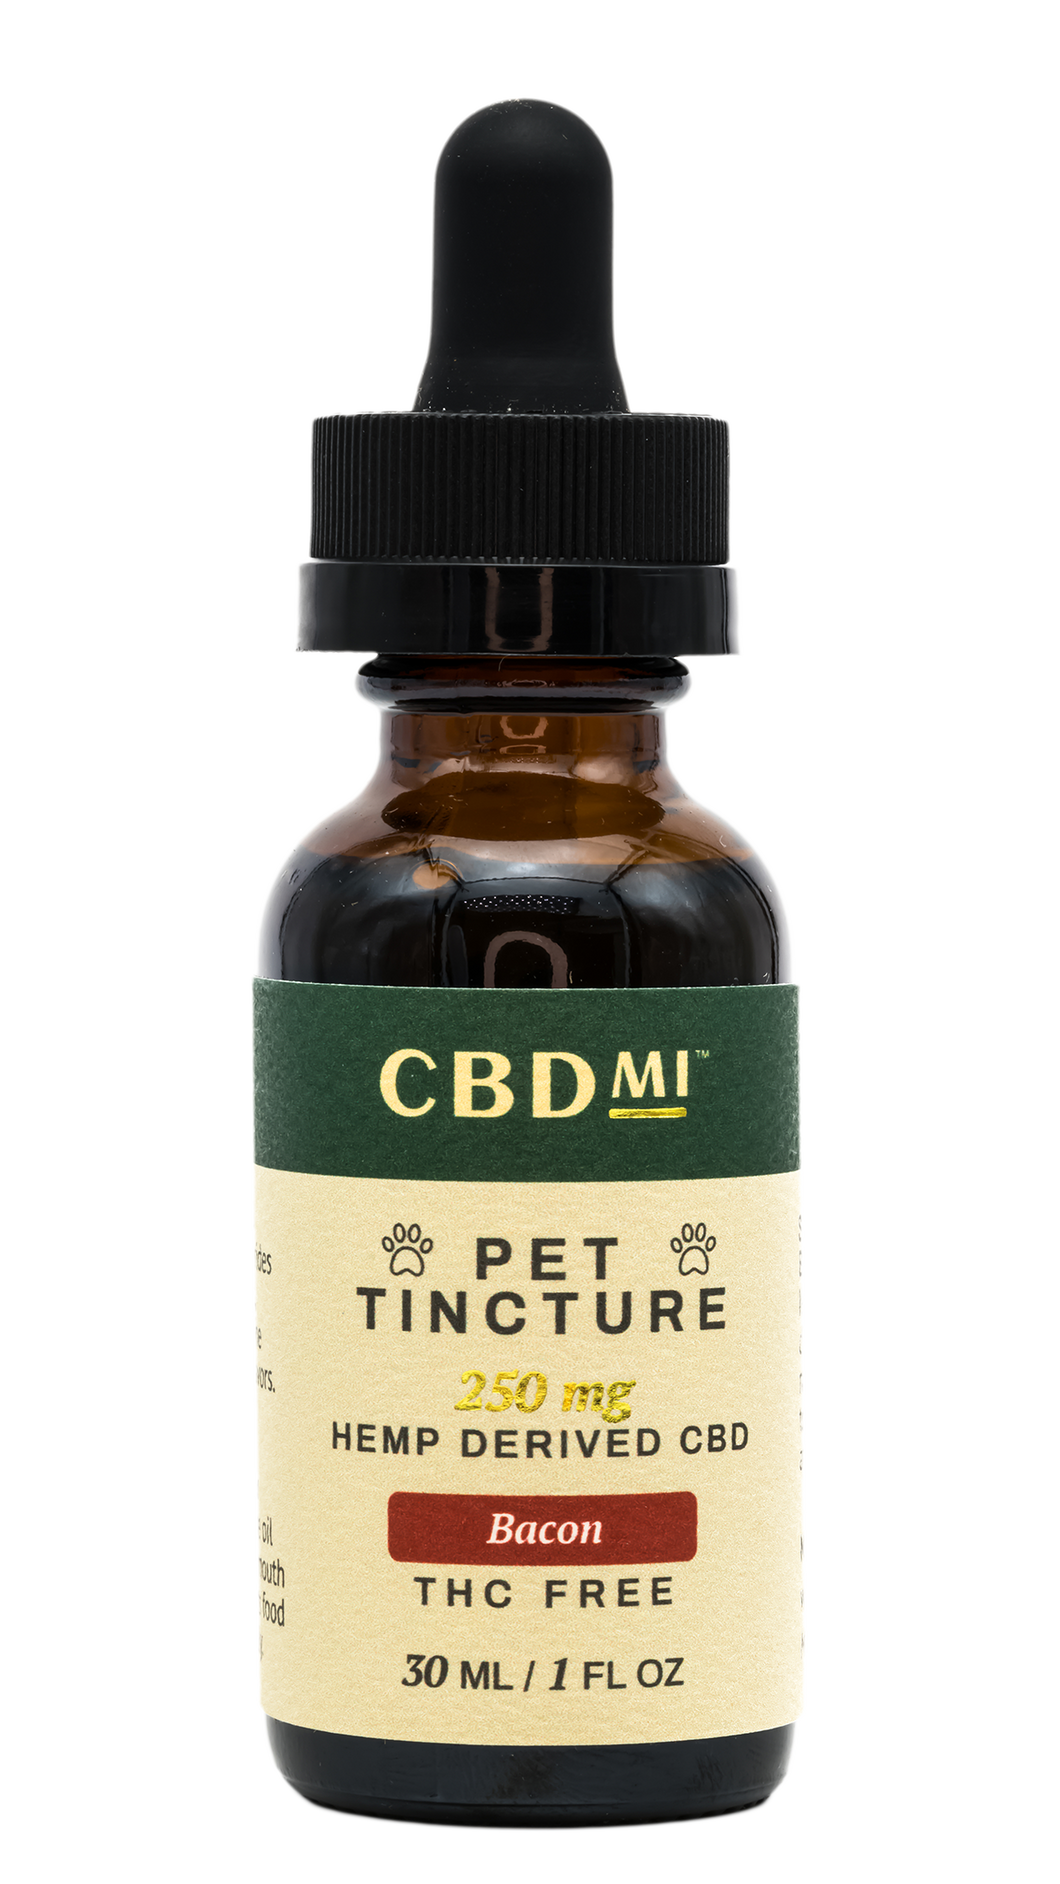 Pet Tincture - Bacon - 250mg